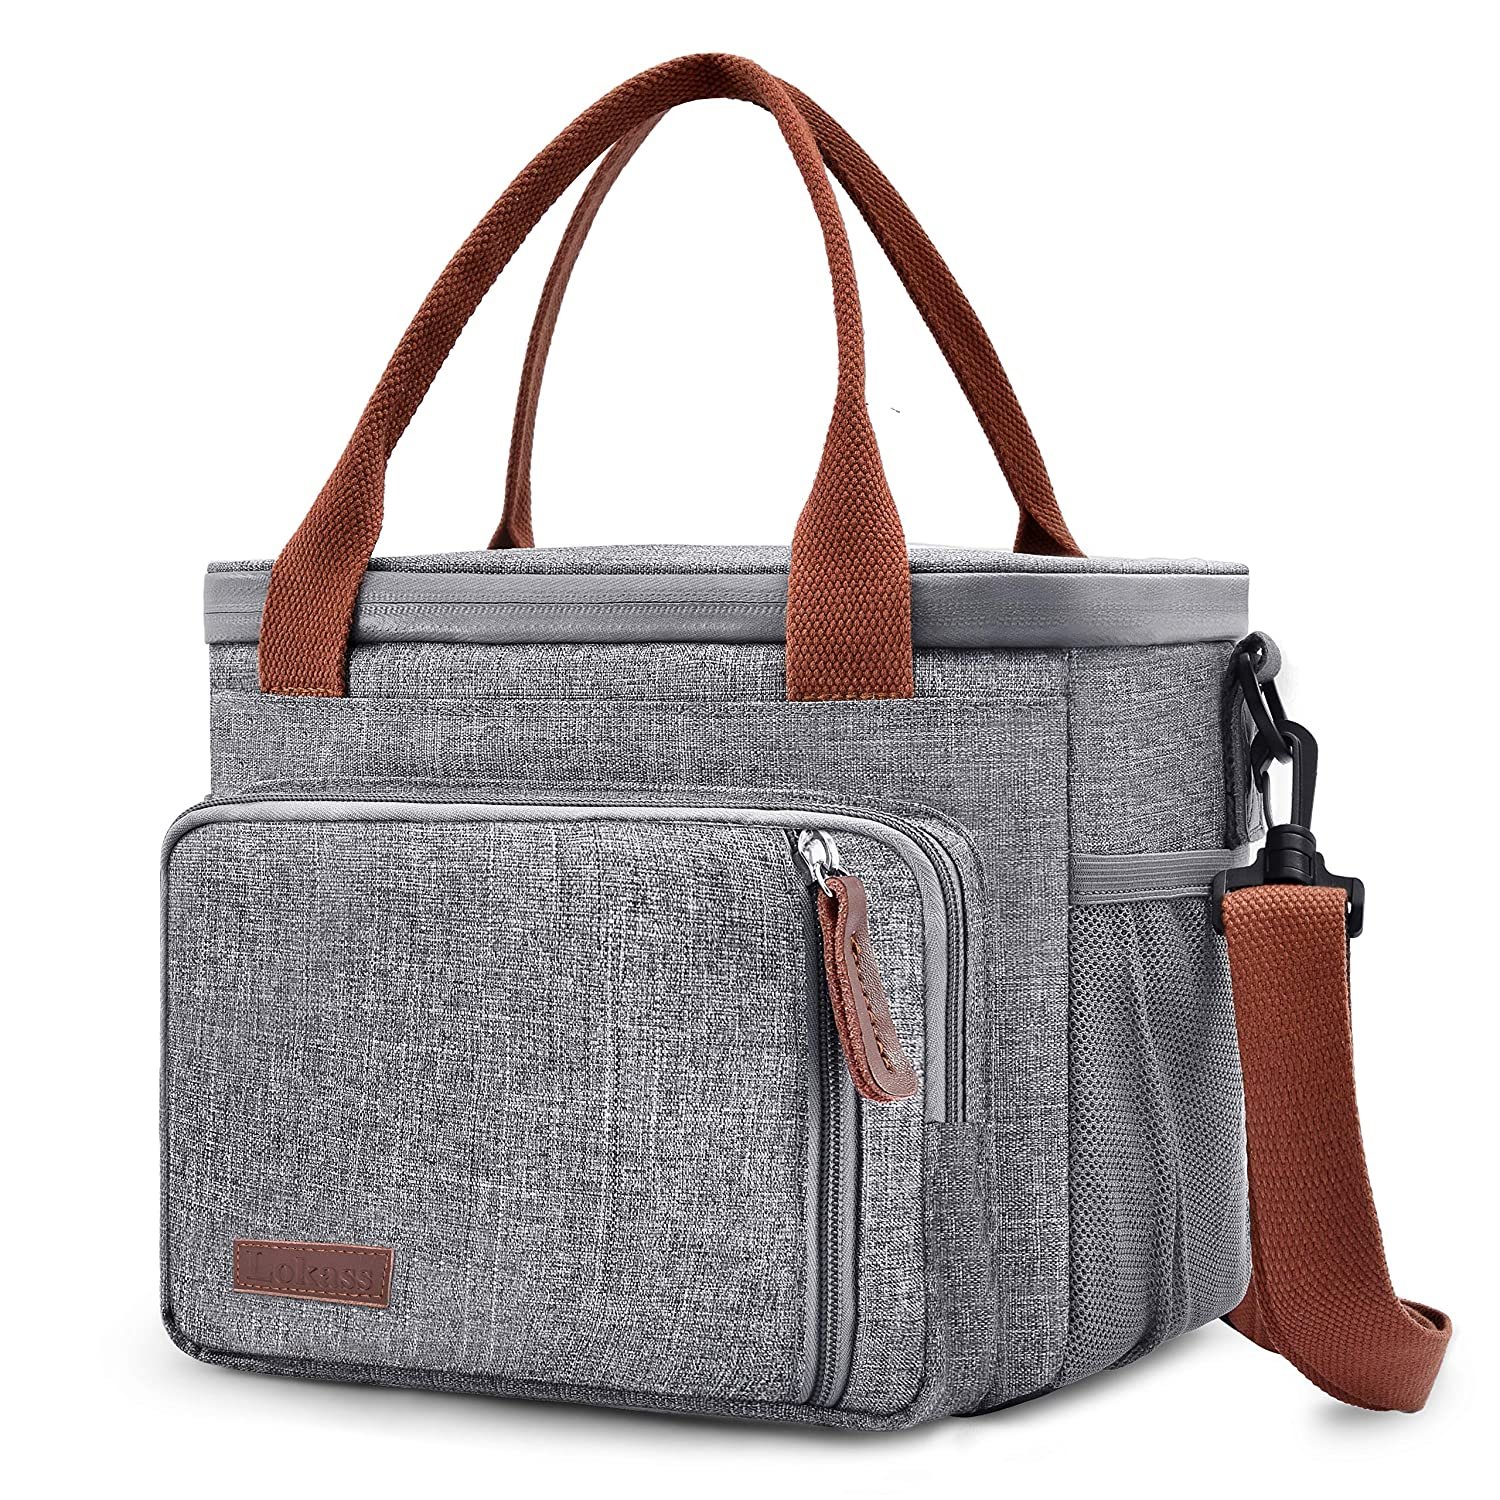 UTOTEBAG Cooler Bag Nylon Insulated Cooler Box Wide Open Lunch Bag Leak-Proof Lunch Tote Large Capacity Cooler Tote with Removable Shoulder Strap for Men Picnic Beach Camping Fishing Grey